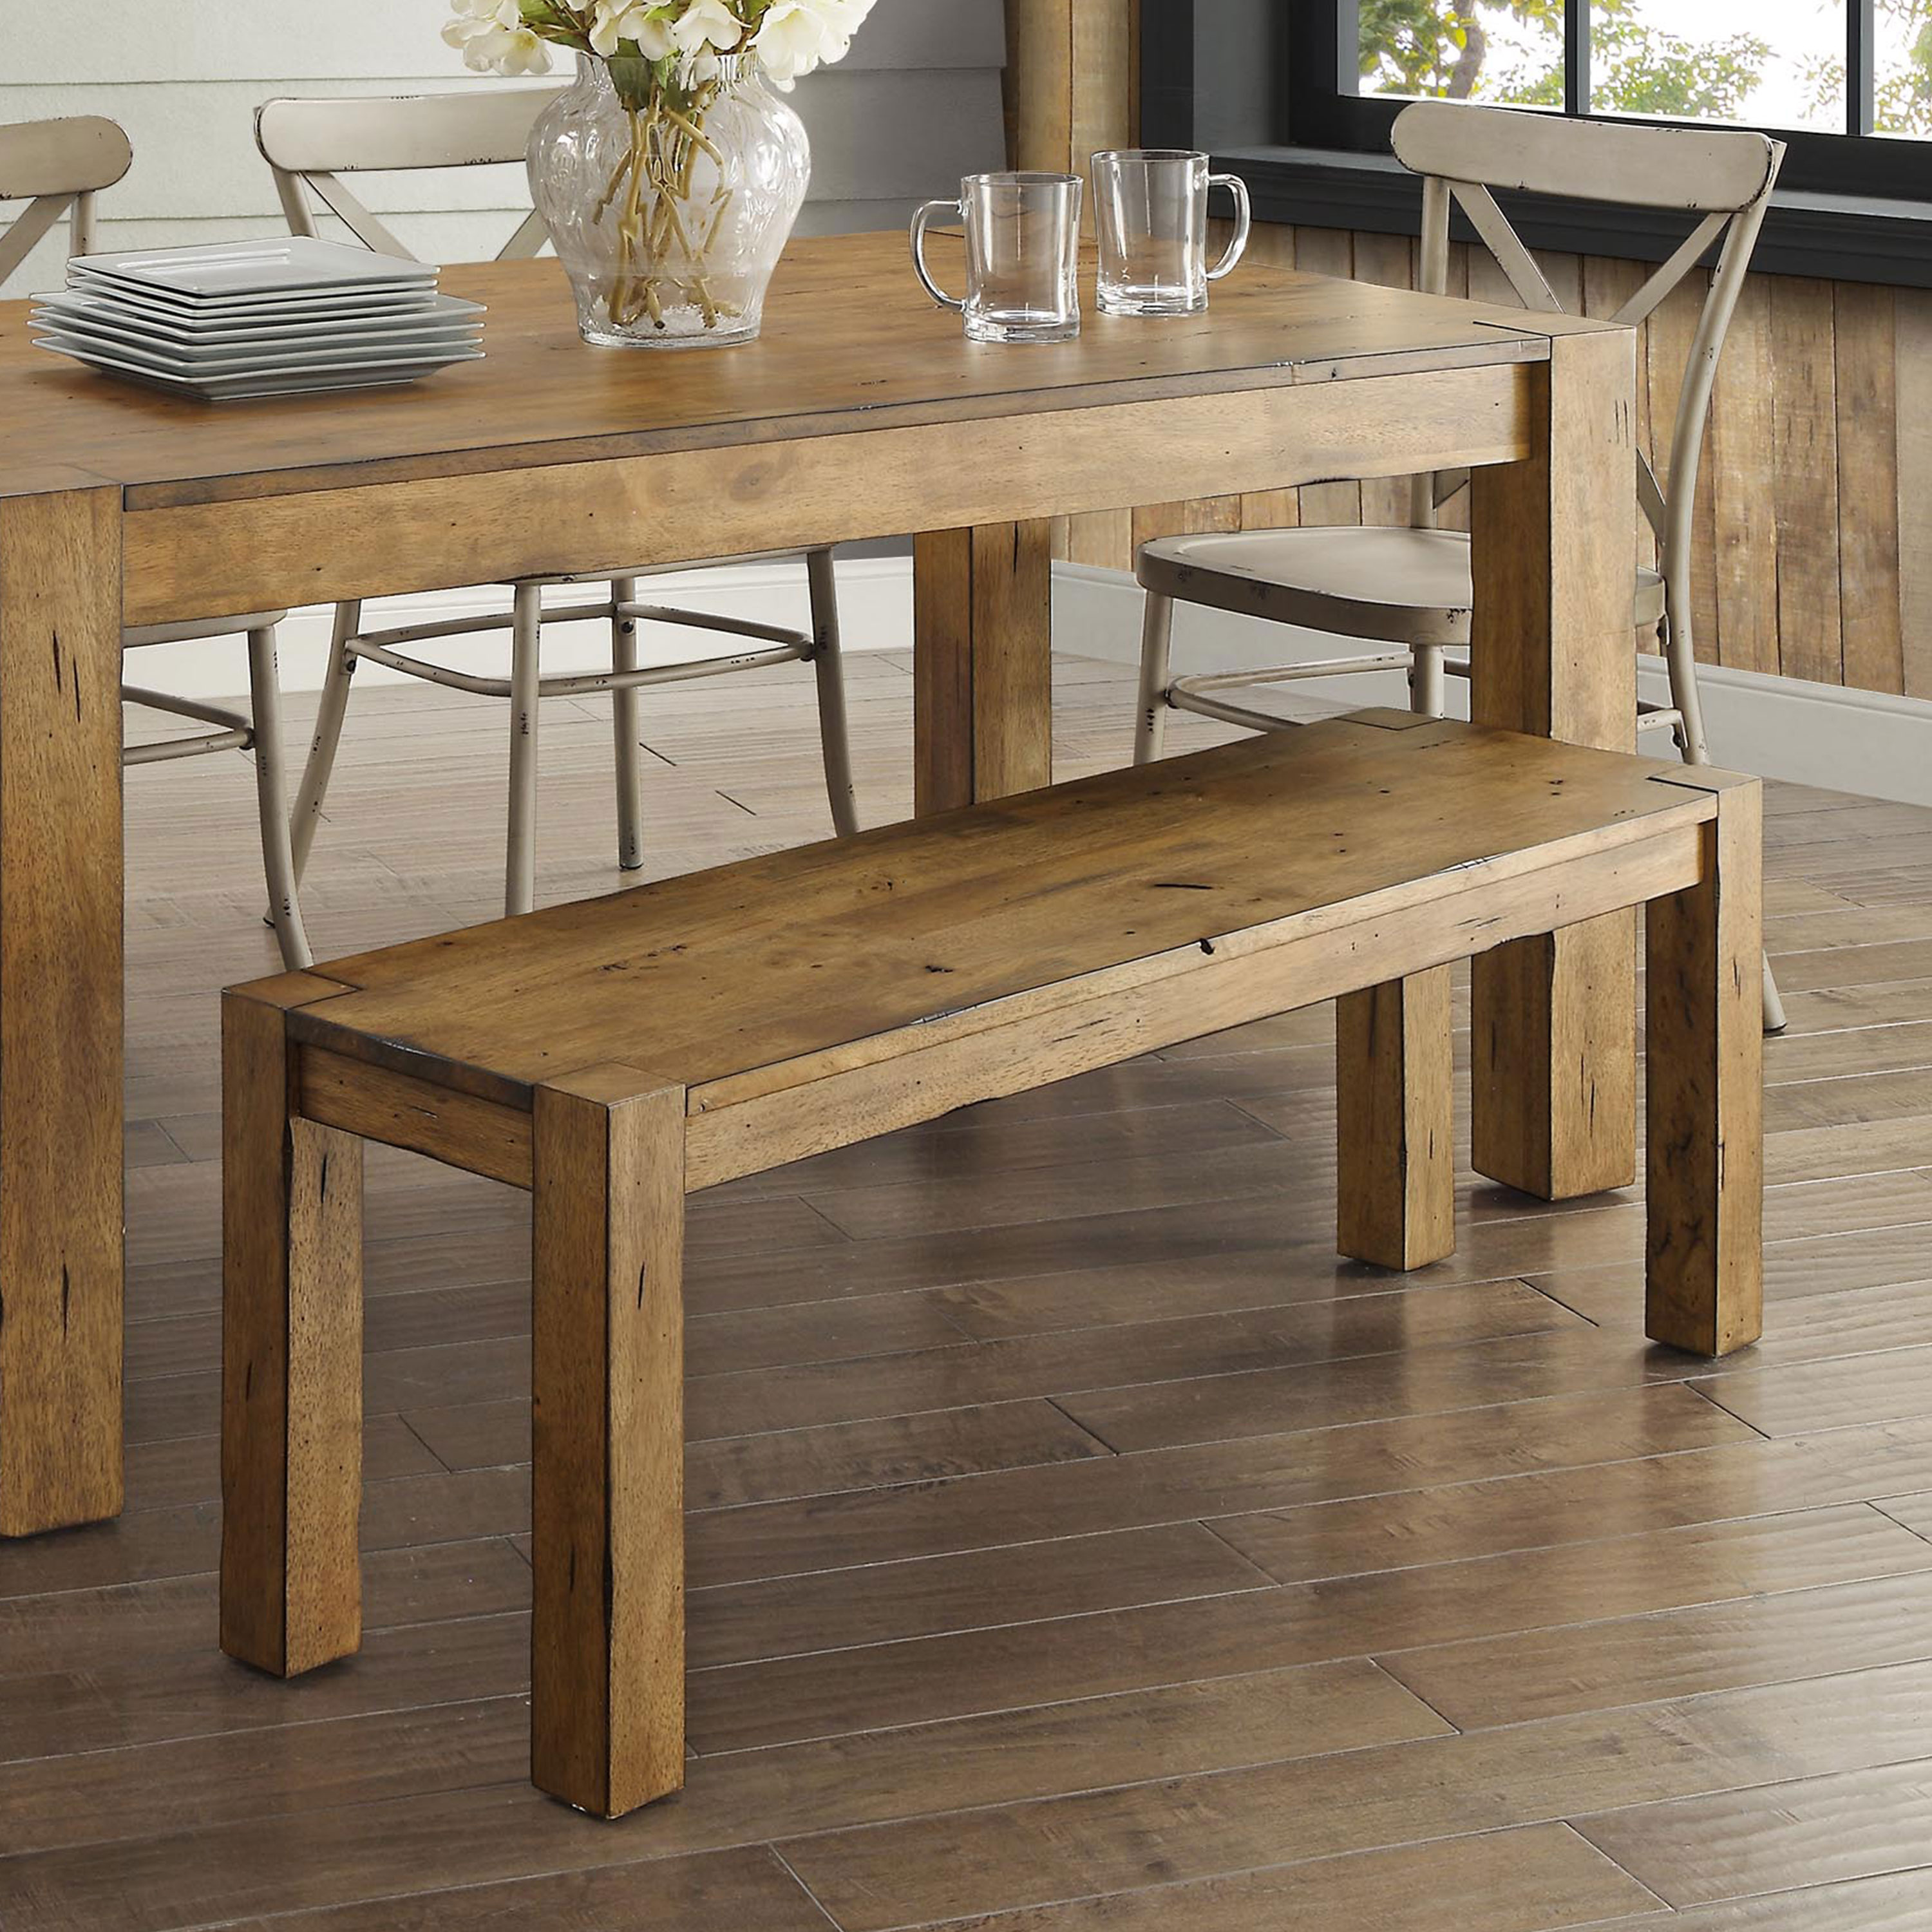 Better Homes Gardens Bryant Solid Wood Dining Bench Rustic Brown 764053505249 Ebay